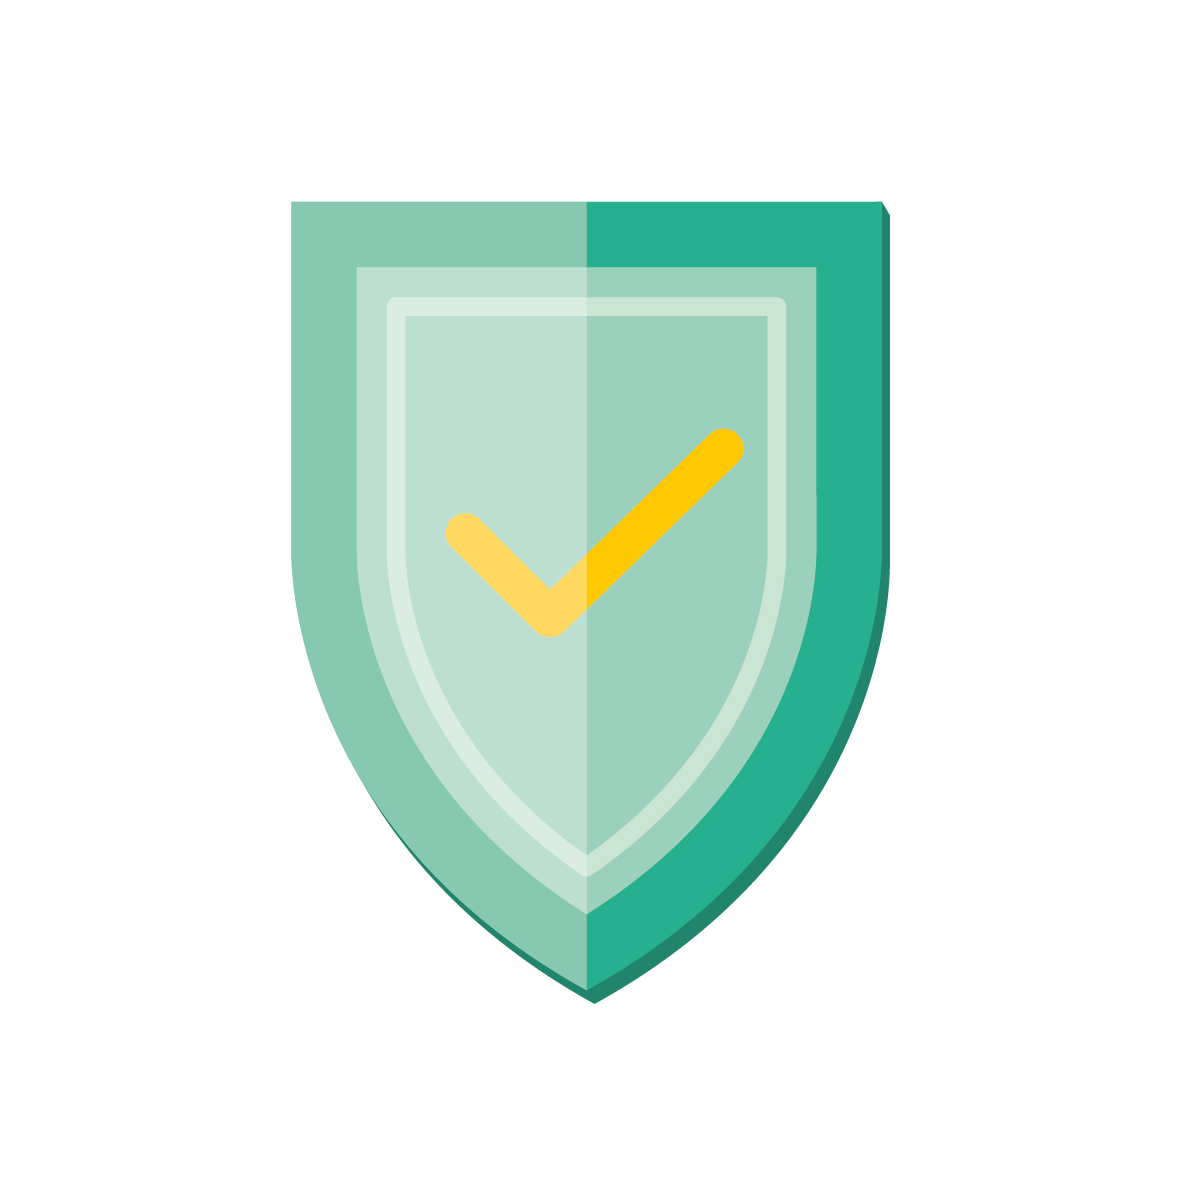 Icons_Shield.png